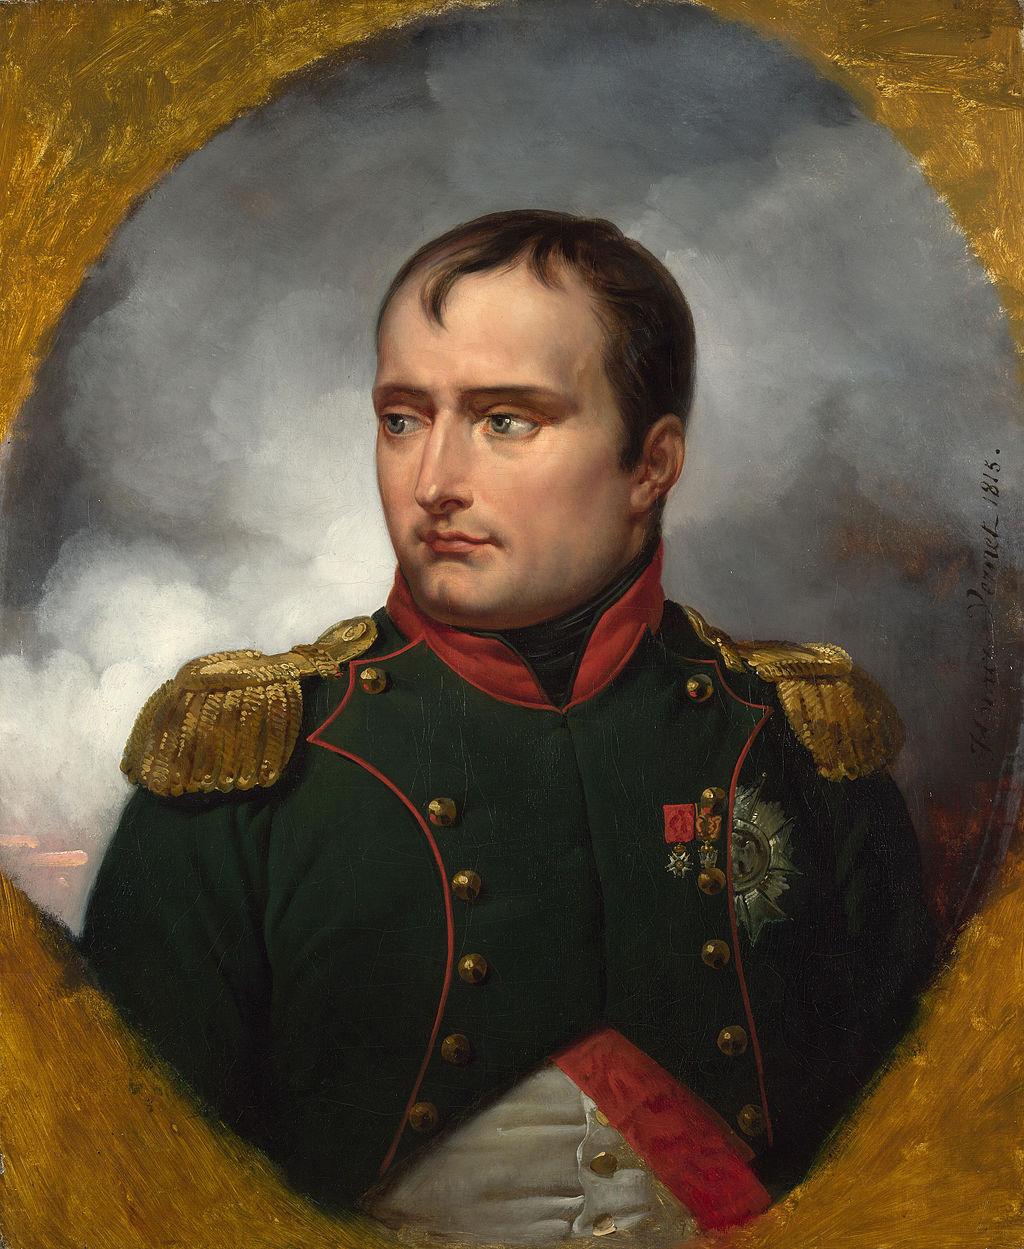 """The Emperor Napoleon I"" by Horace Vernet"